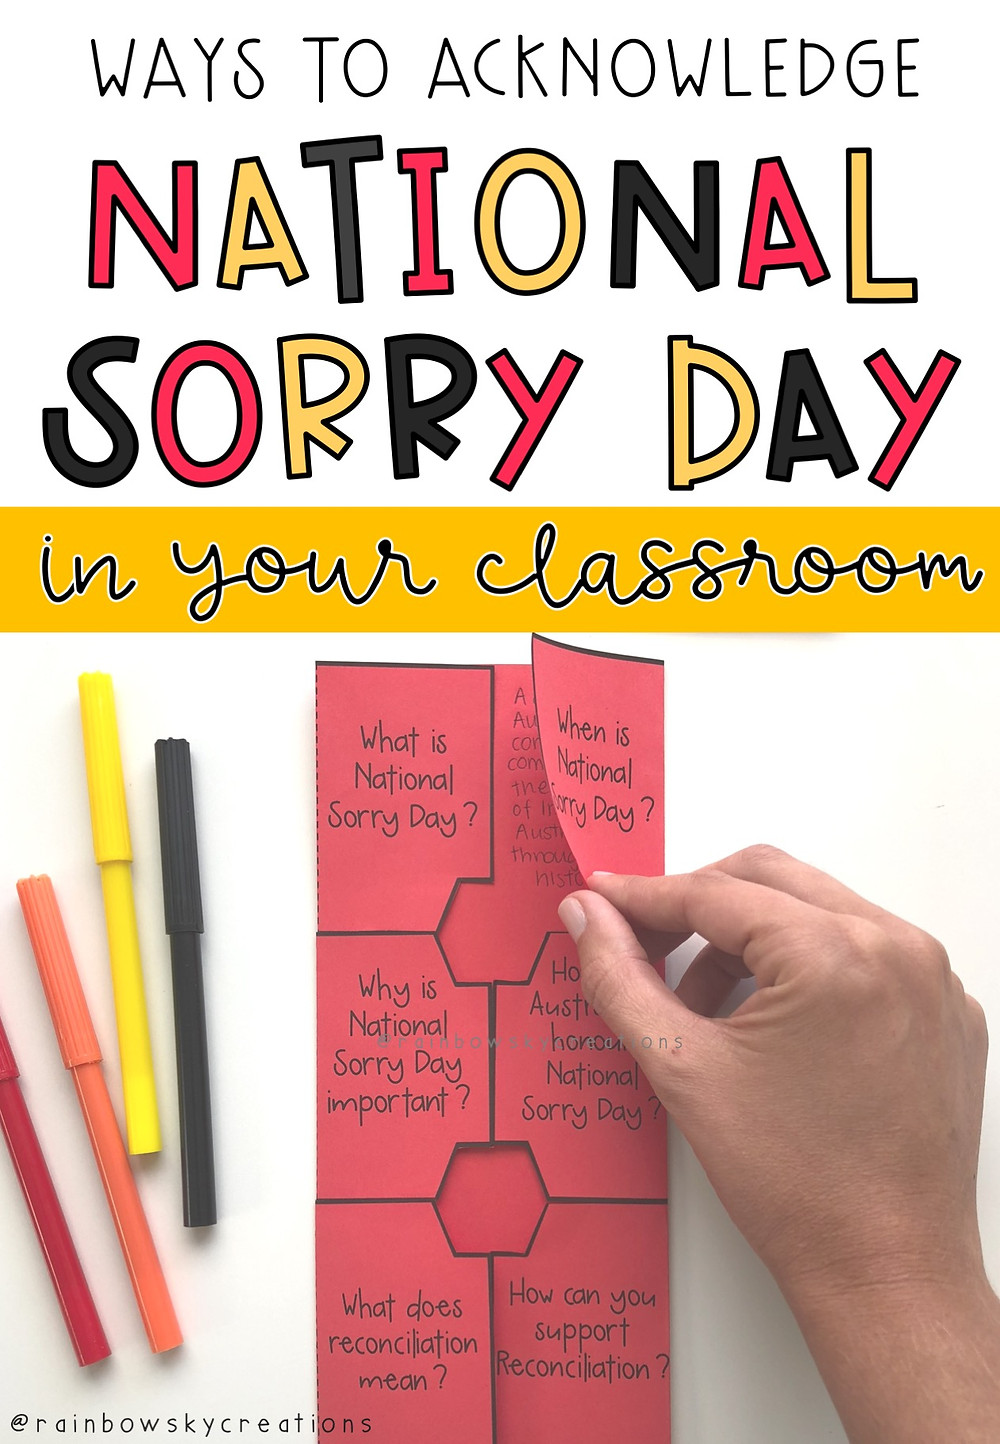 Ways-to-acknowledge-national-sorry-day-in-the-classroom letters and interactive worksheet photo